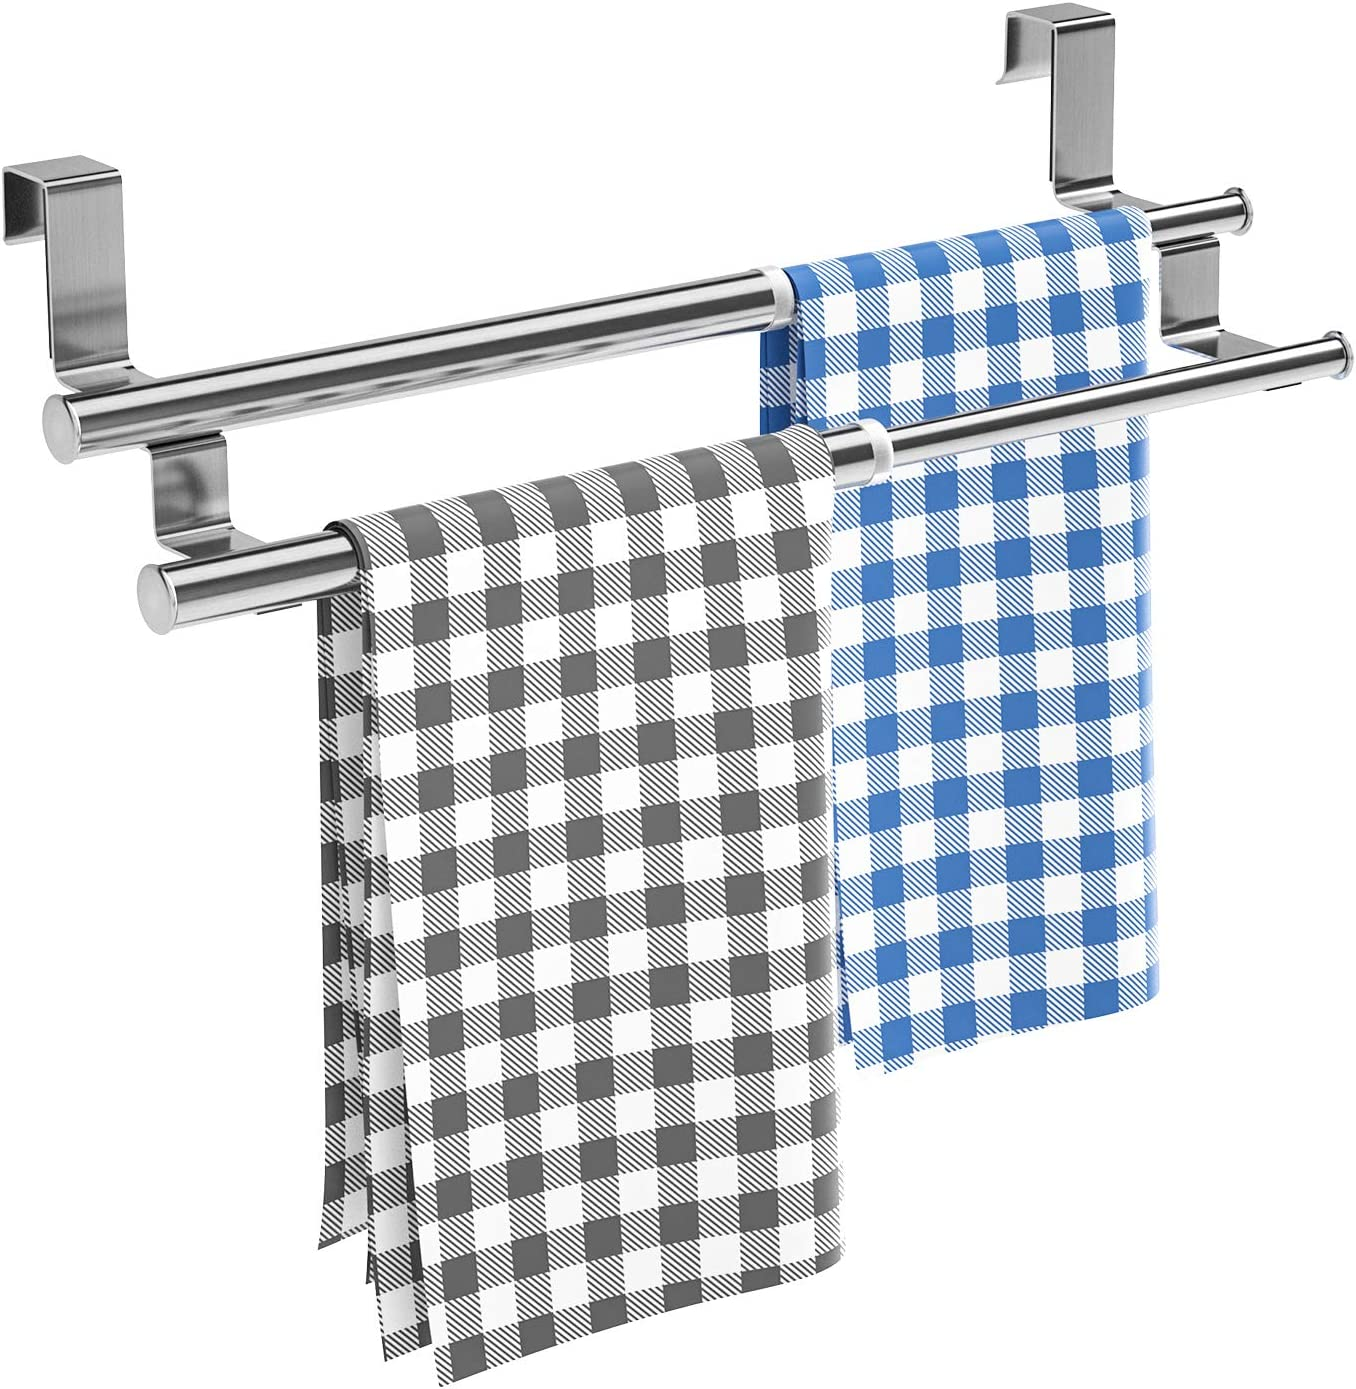 Amazon Com Kitchen Towel Holder Over Cabinet Towel Bar Rack Expandable Double Over The Cabinet Door Towel Rack For Universal Fit On Inside Or Outside Of Cupboard Doors Stainless Steel Kitchen Dining